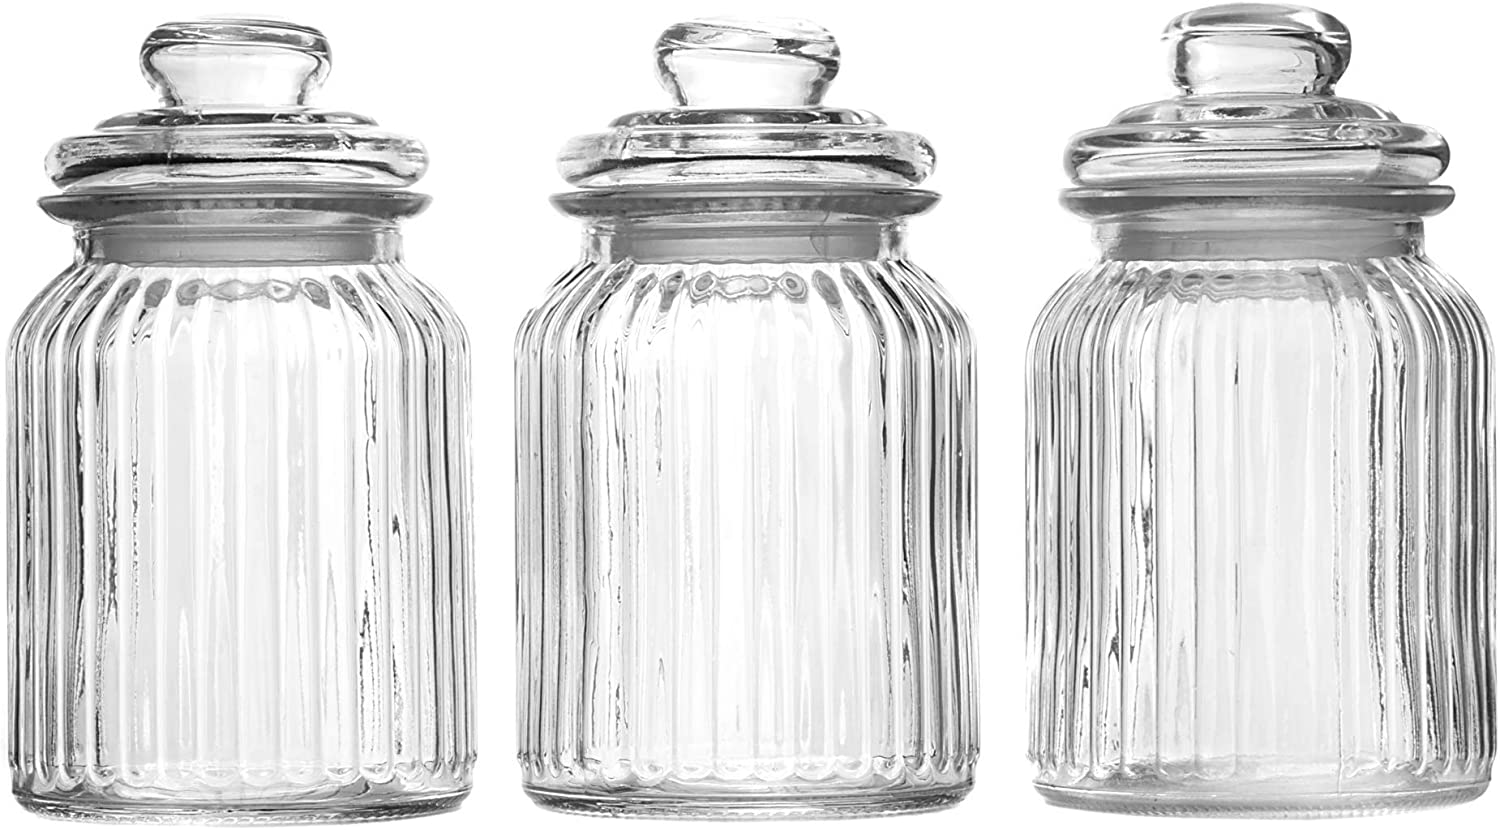 Set of 3 Vintage Airtight Glass Jars Coffee 990ml M/&W Ideal for Tea Traditional Sweet Jar Style Storage Containers Sweets and More